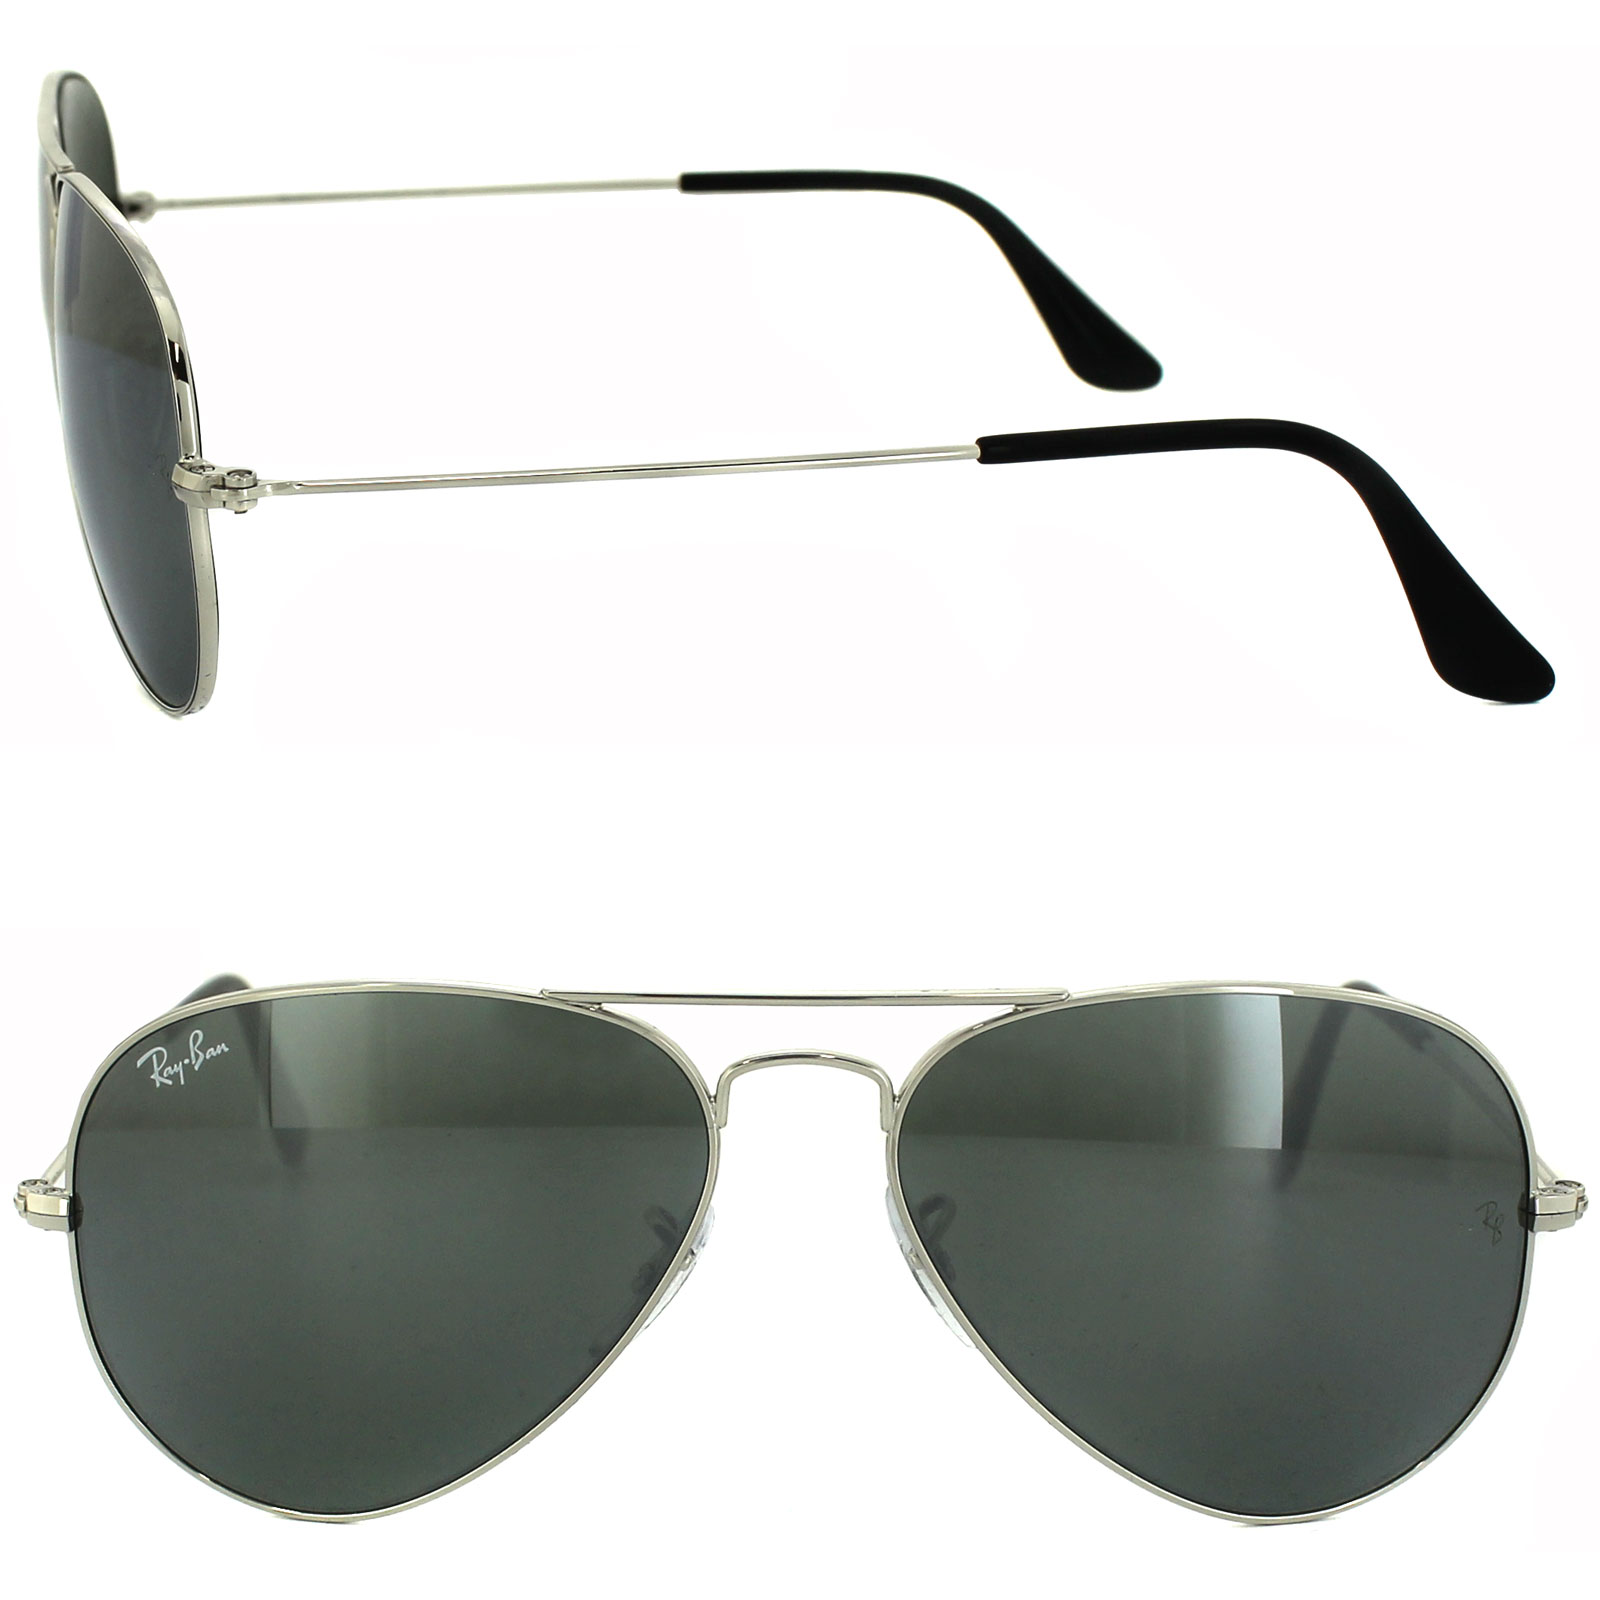 ray ban aviator sunglasses price  Cheap Ray-Ban Aviator 3025 Sunglasses - Discounted Sunglasses